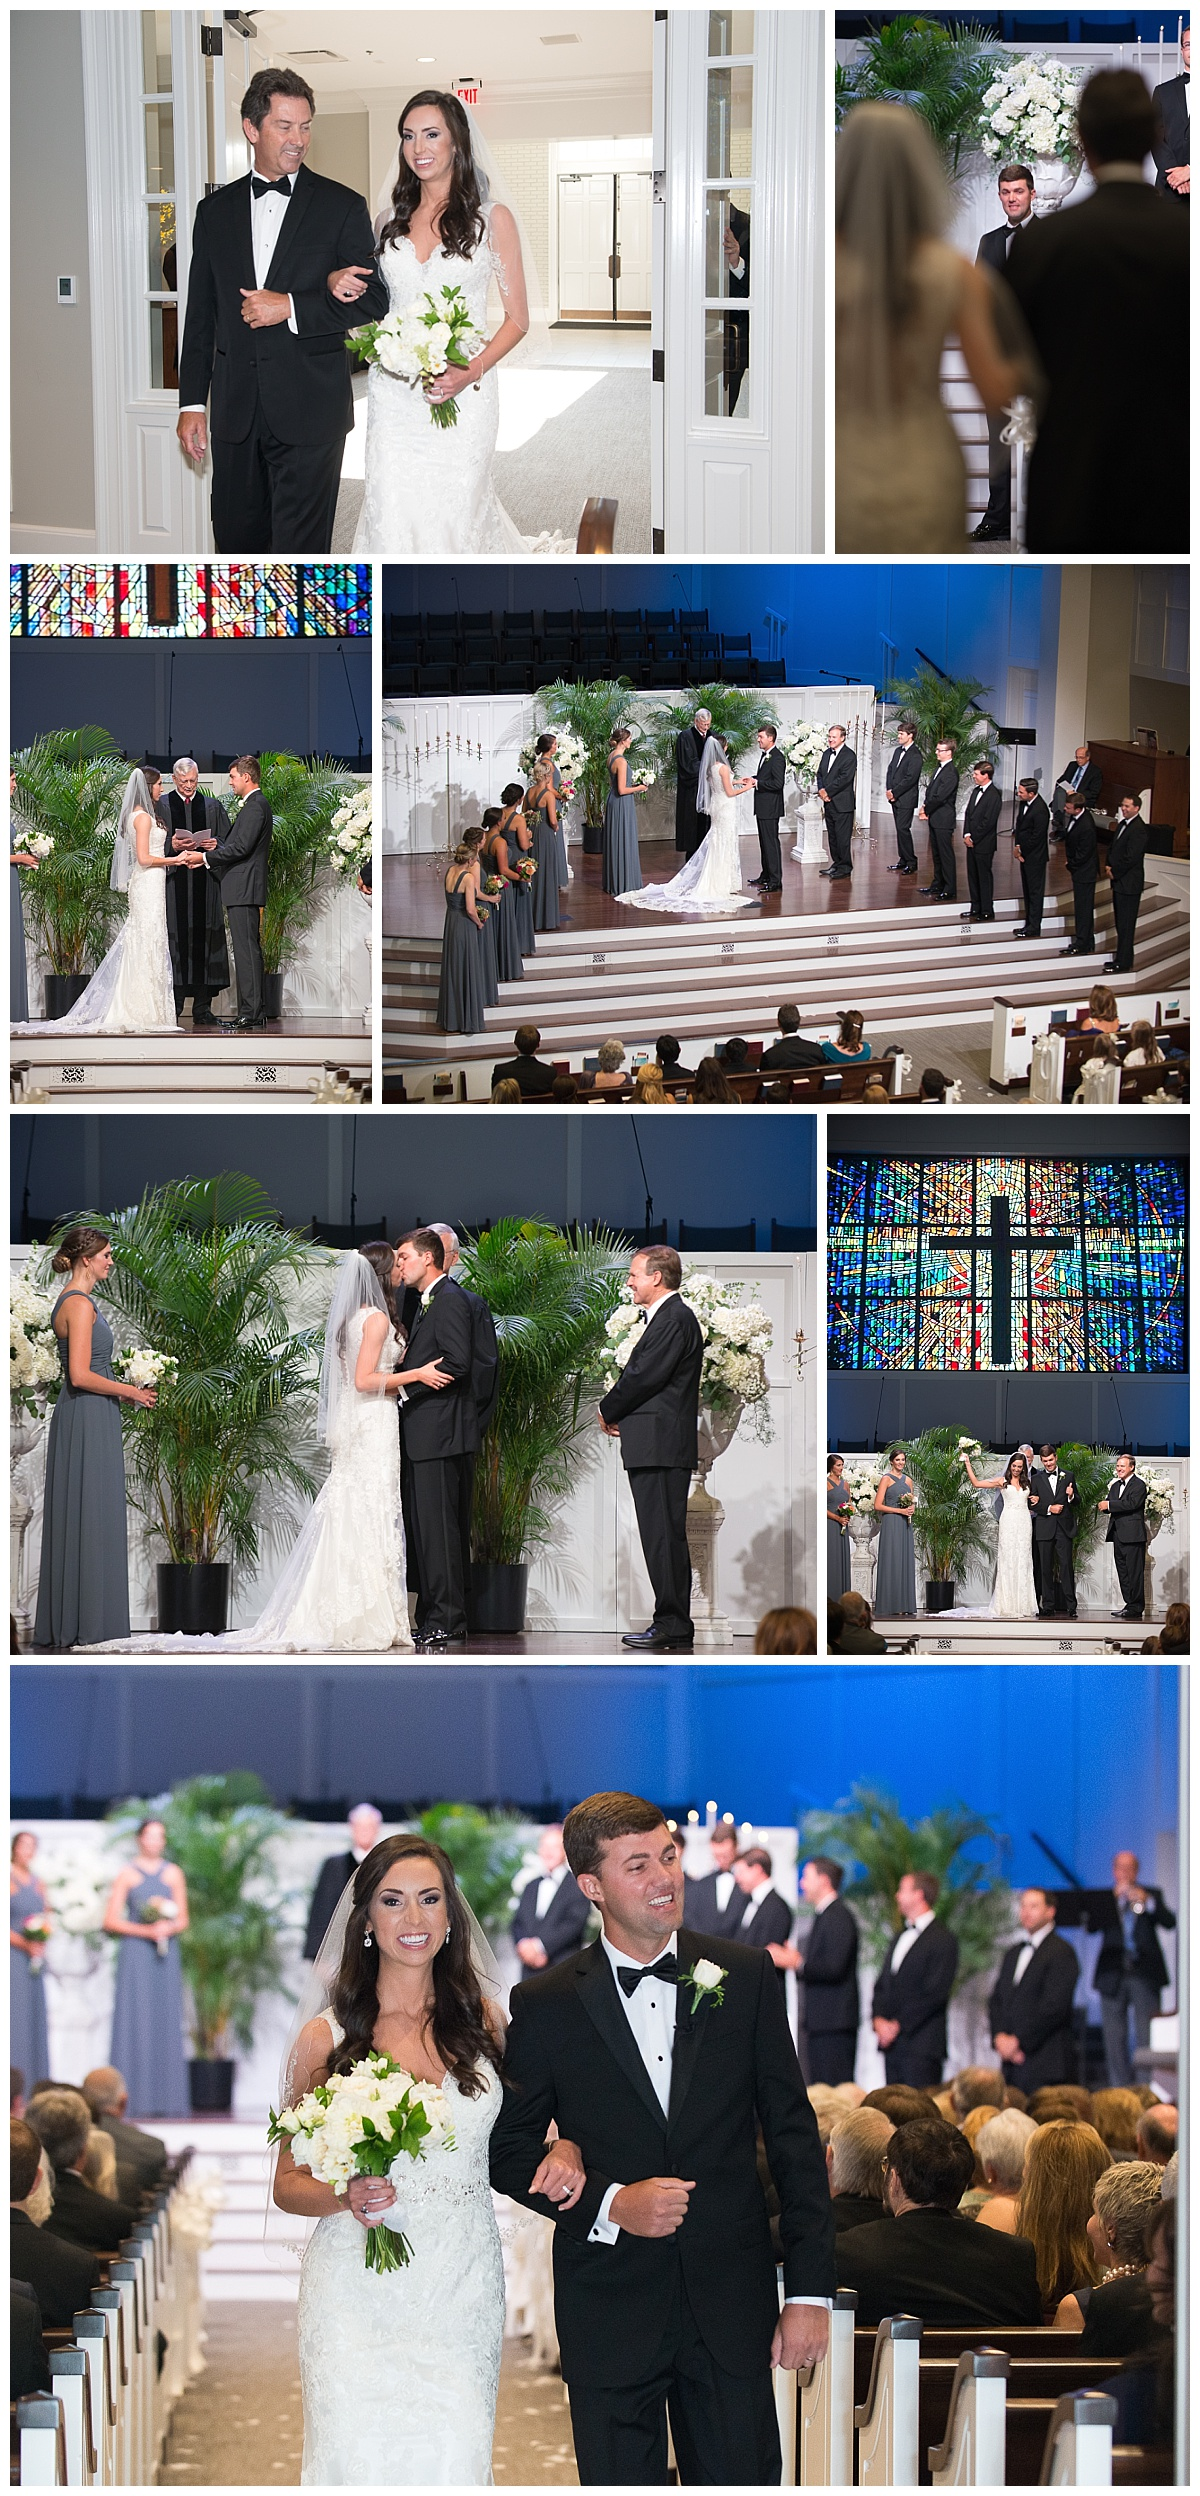 Wedding ceremony at NE Presbyterian church